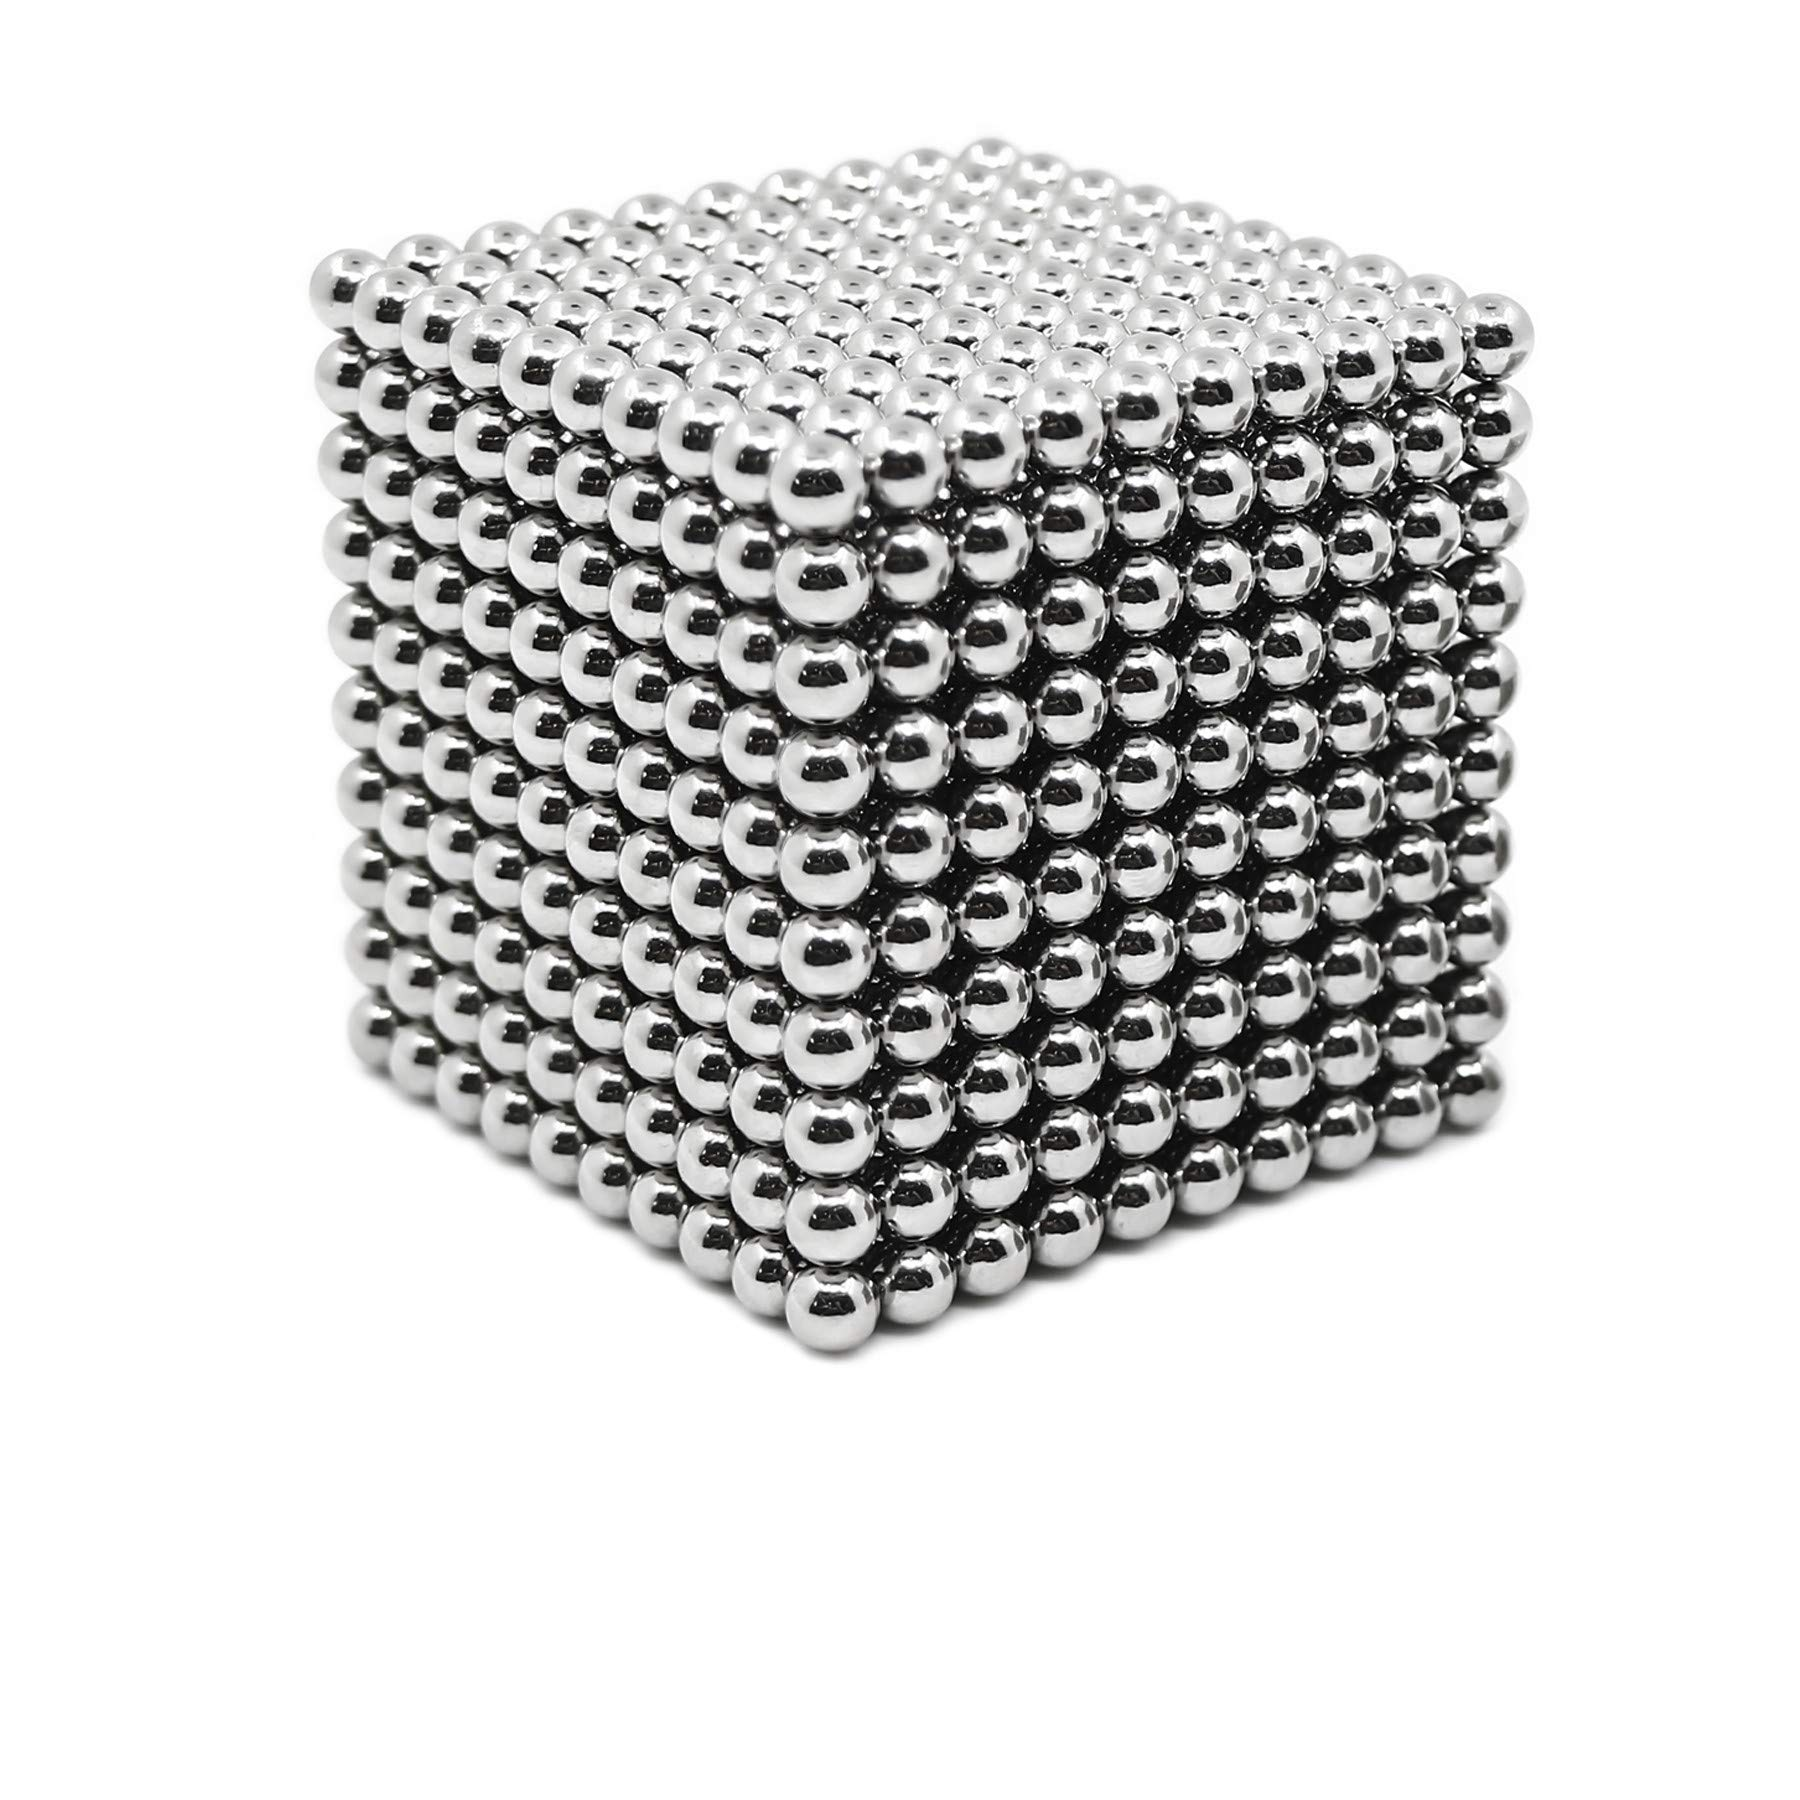 sunsoy Silver 1000 Pieces Silver Magnets Sculpture Building Blocks Toys for Intelligence Learning - Office Toy & Stress Relief for Adults (3 MM) by RLRY